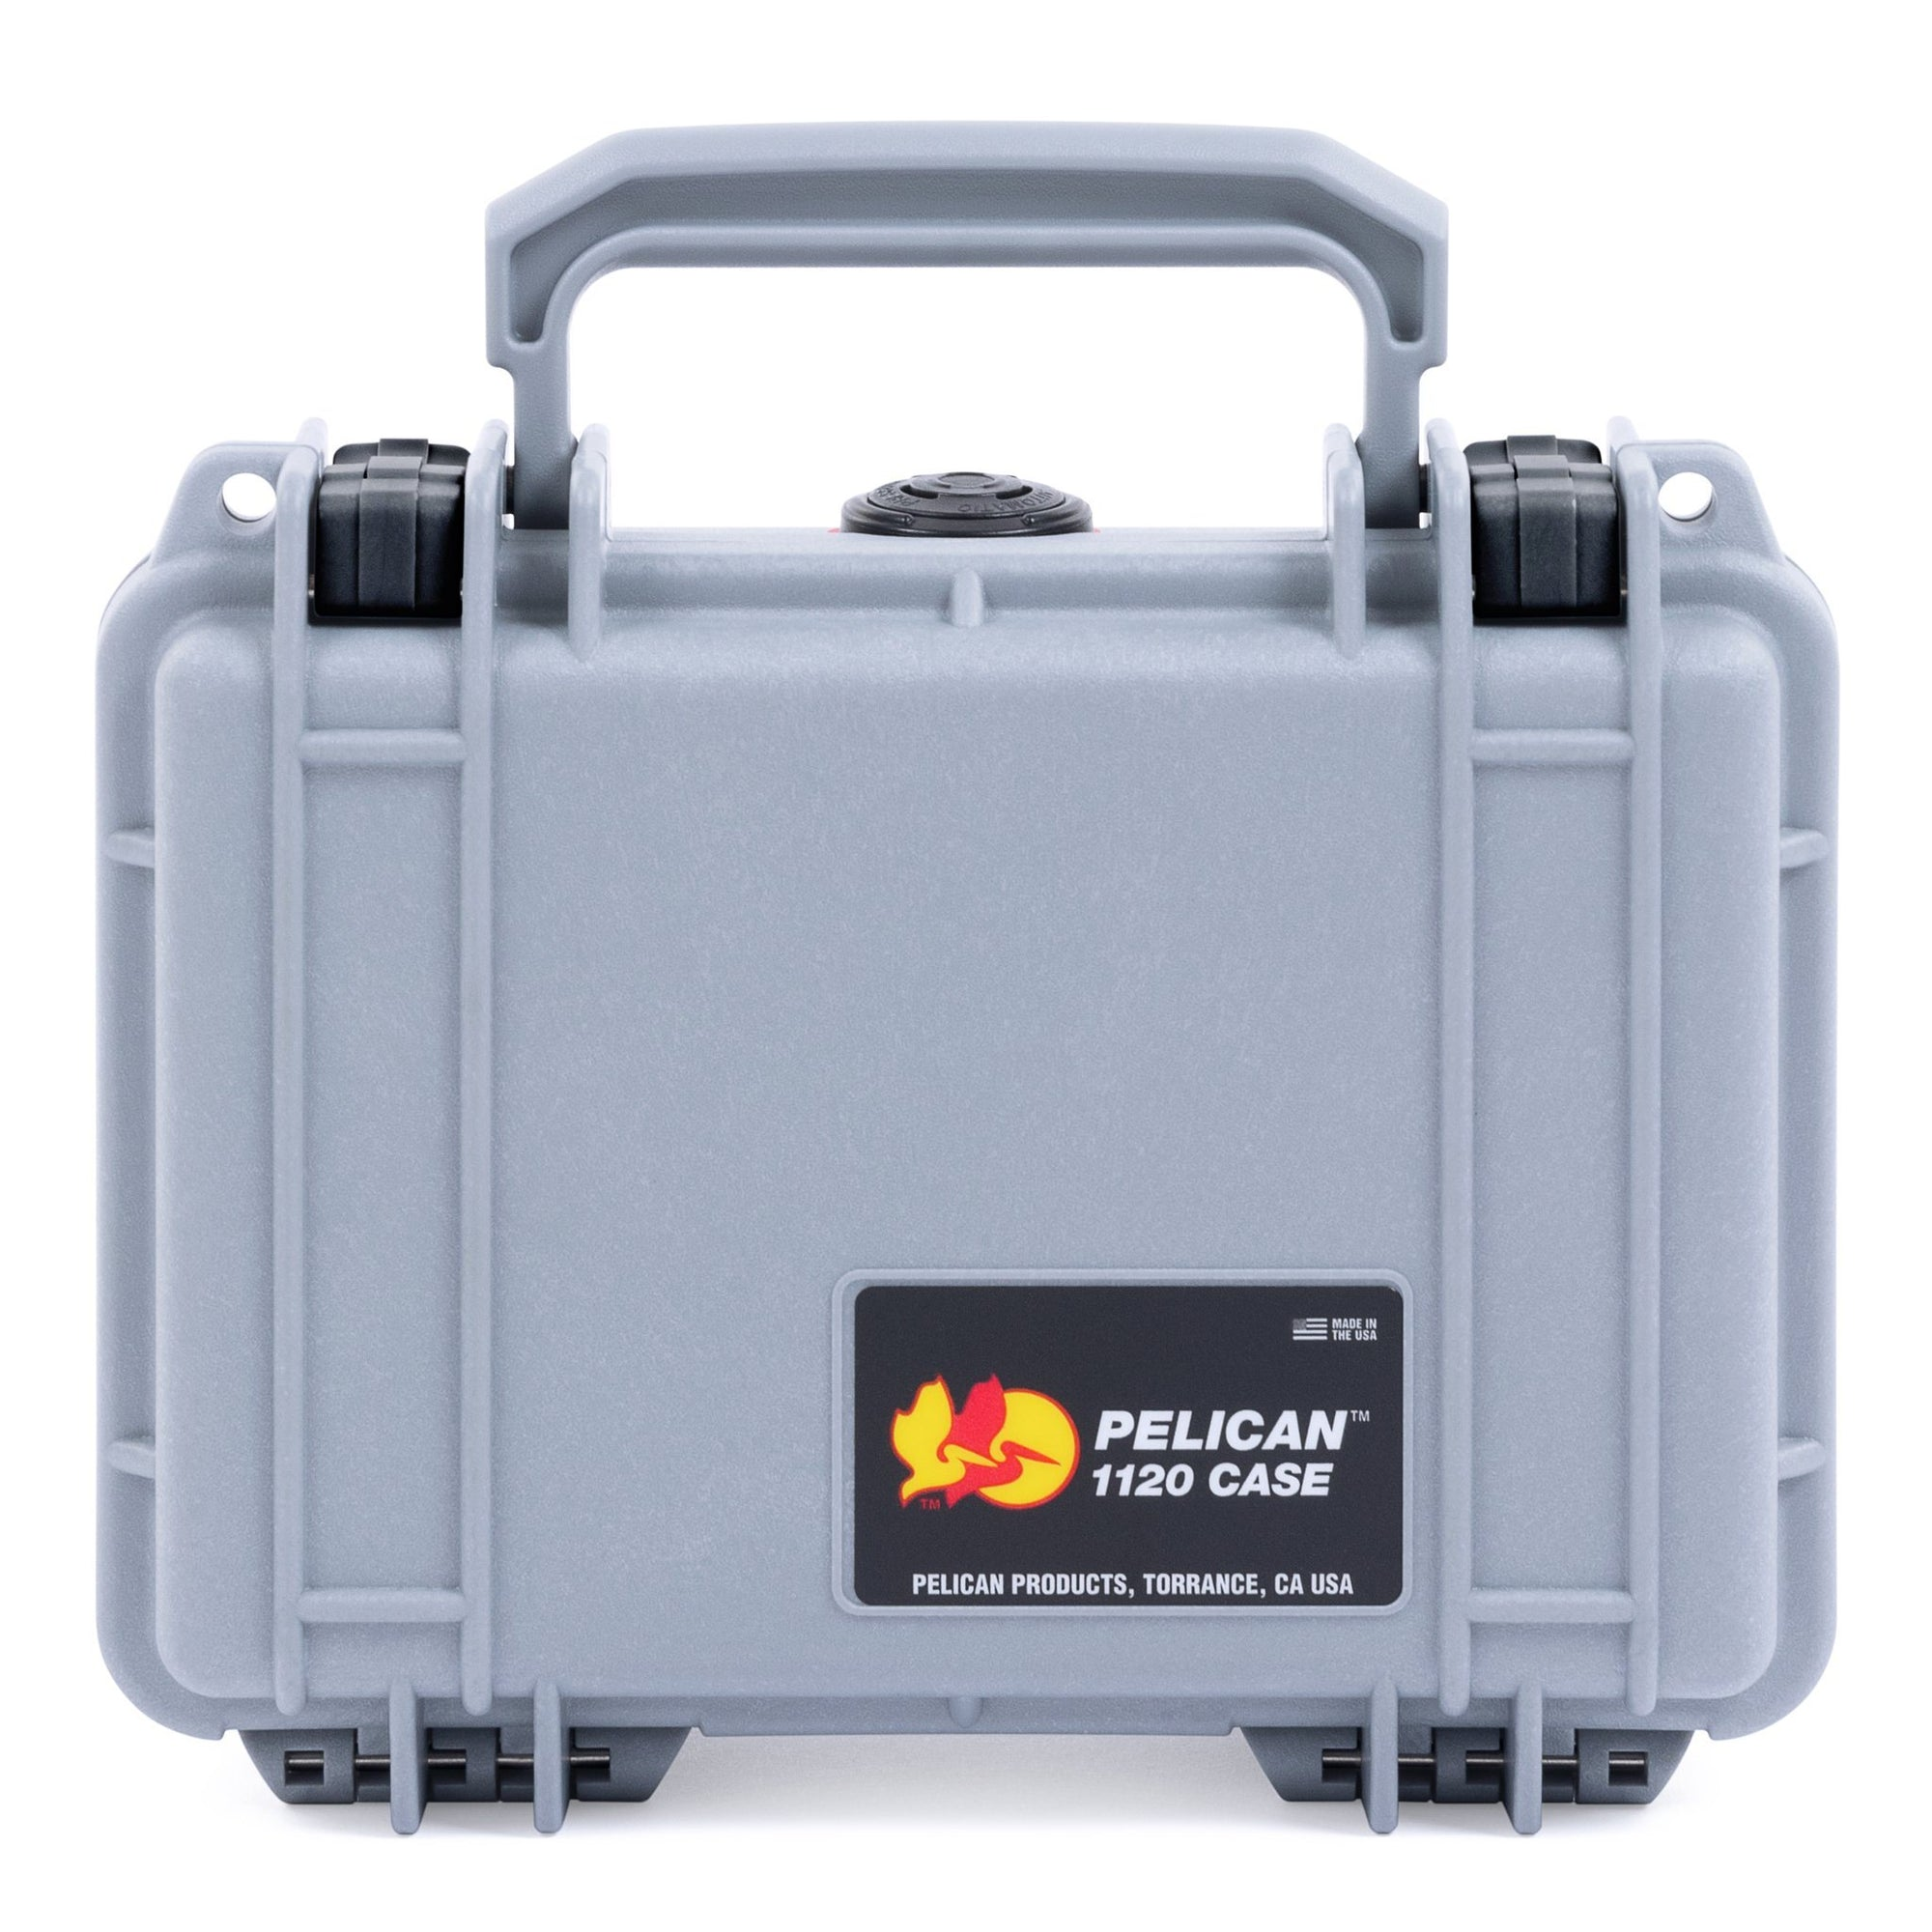 Pelican 1120 Case, Silver with Black Latches - Pelican Color Case